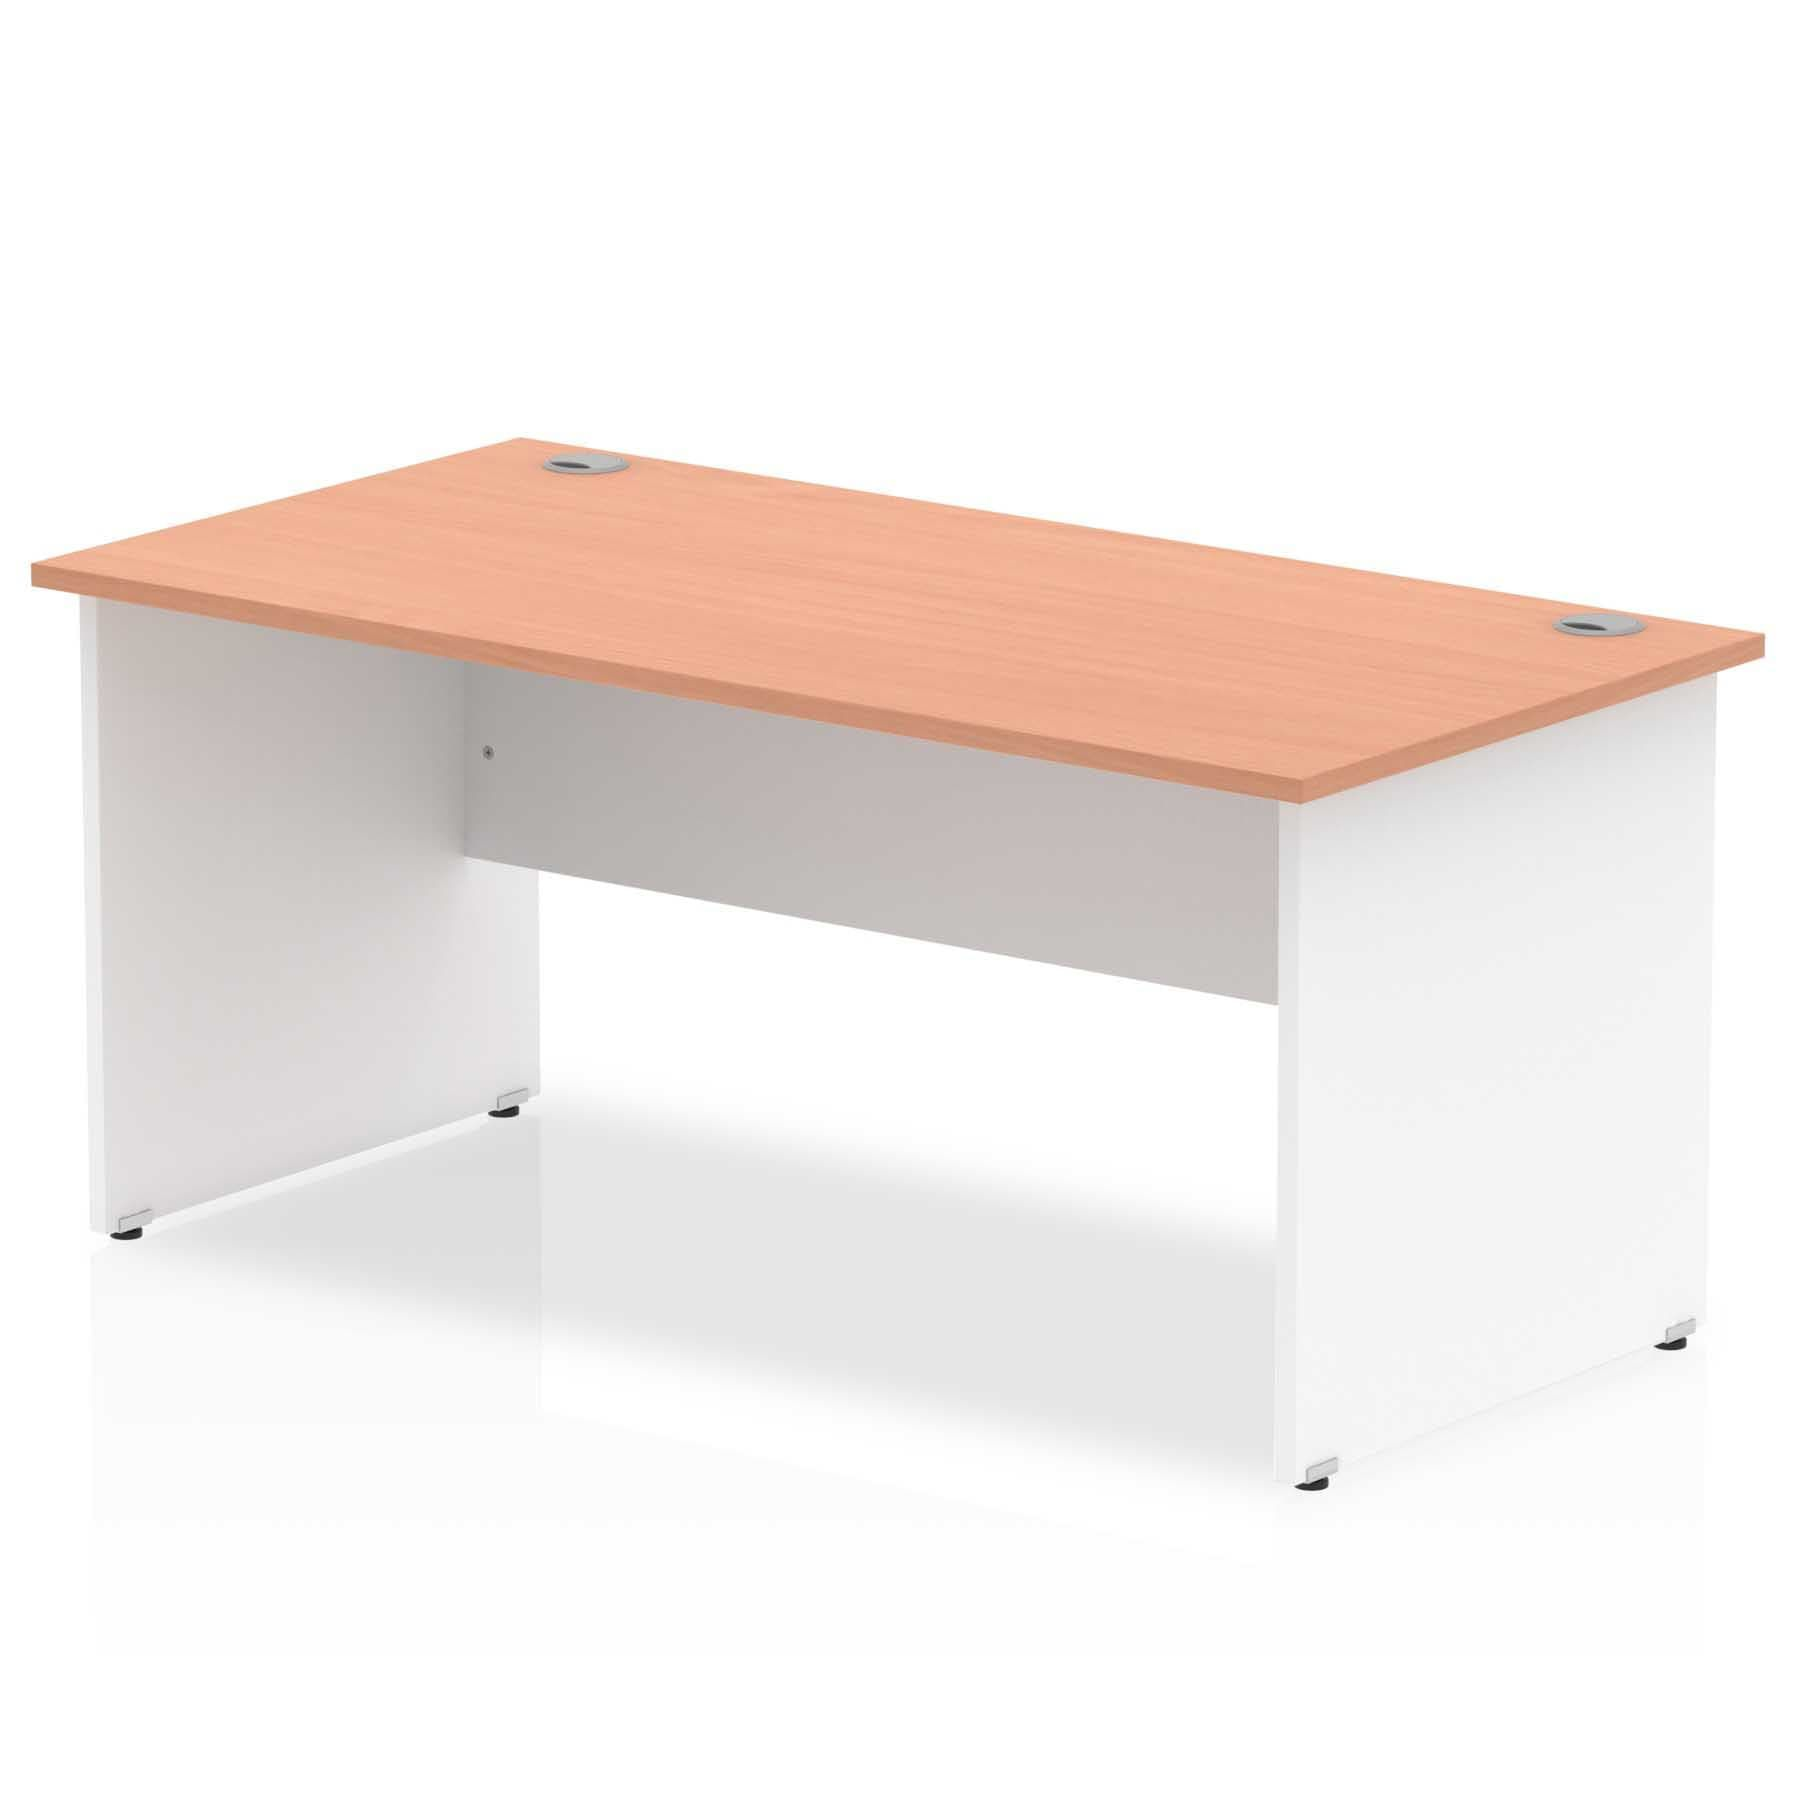 Impulse Panel End 1600 Rectangle Desk with White Panels